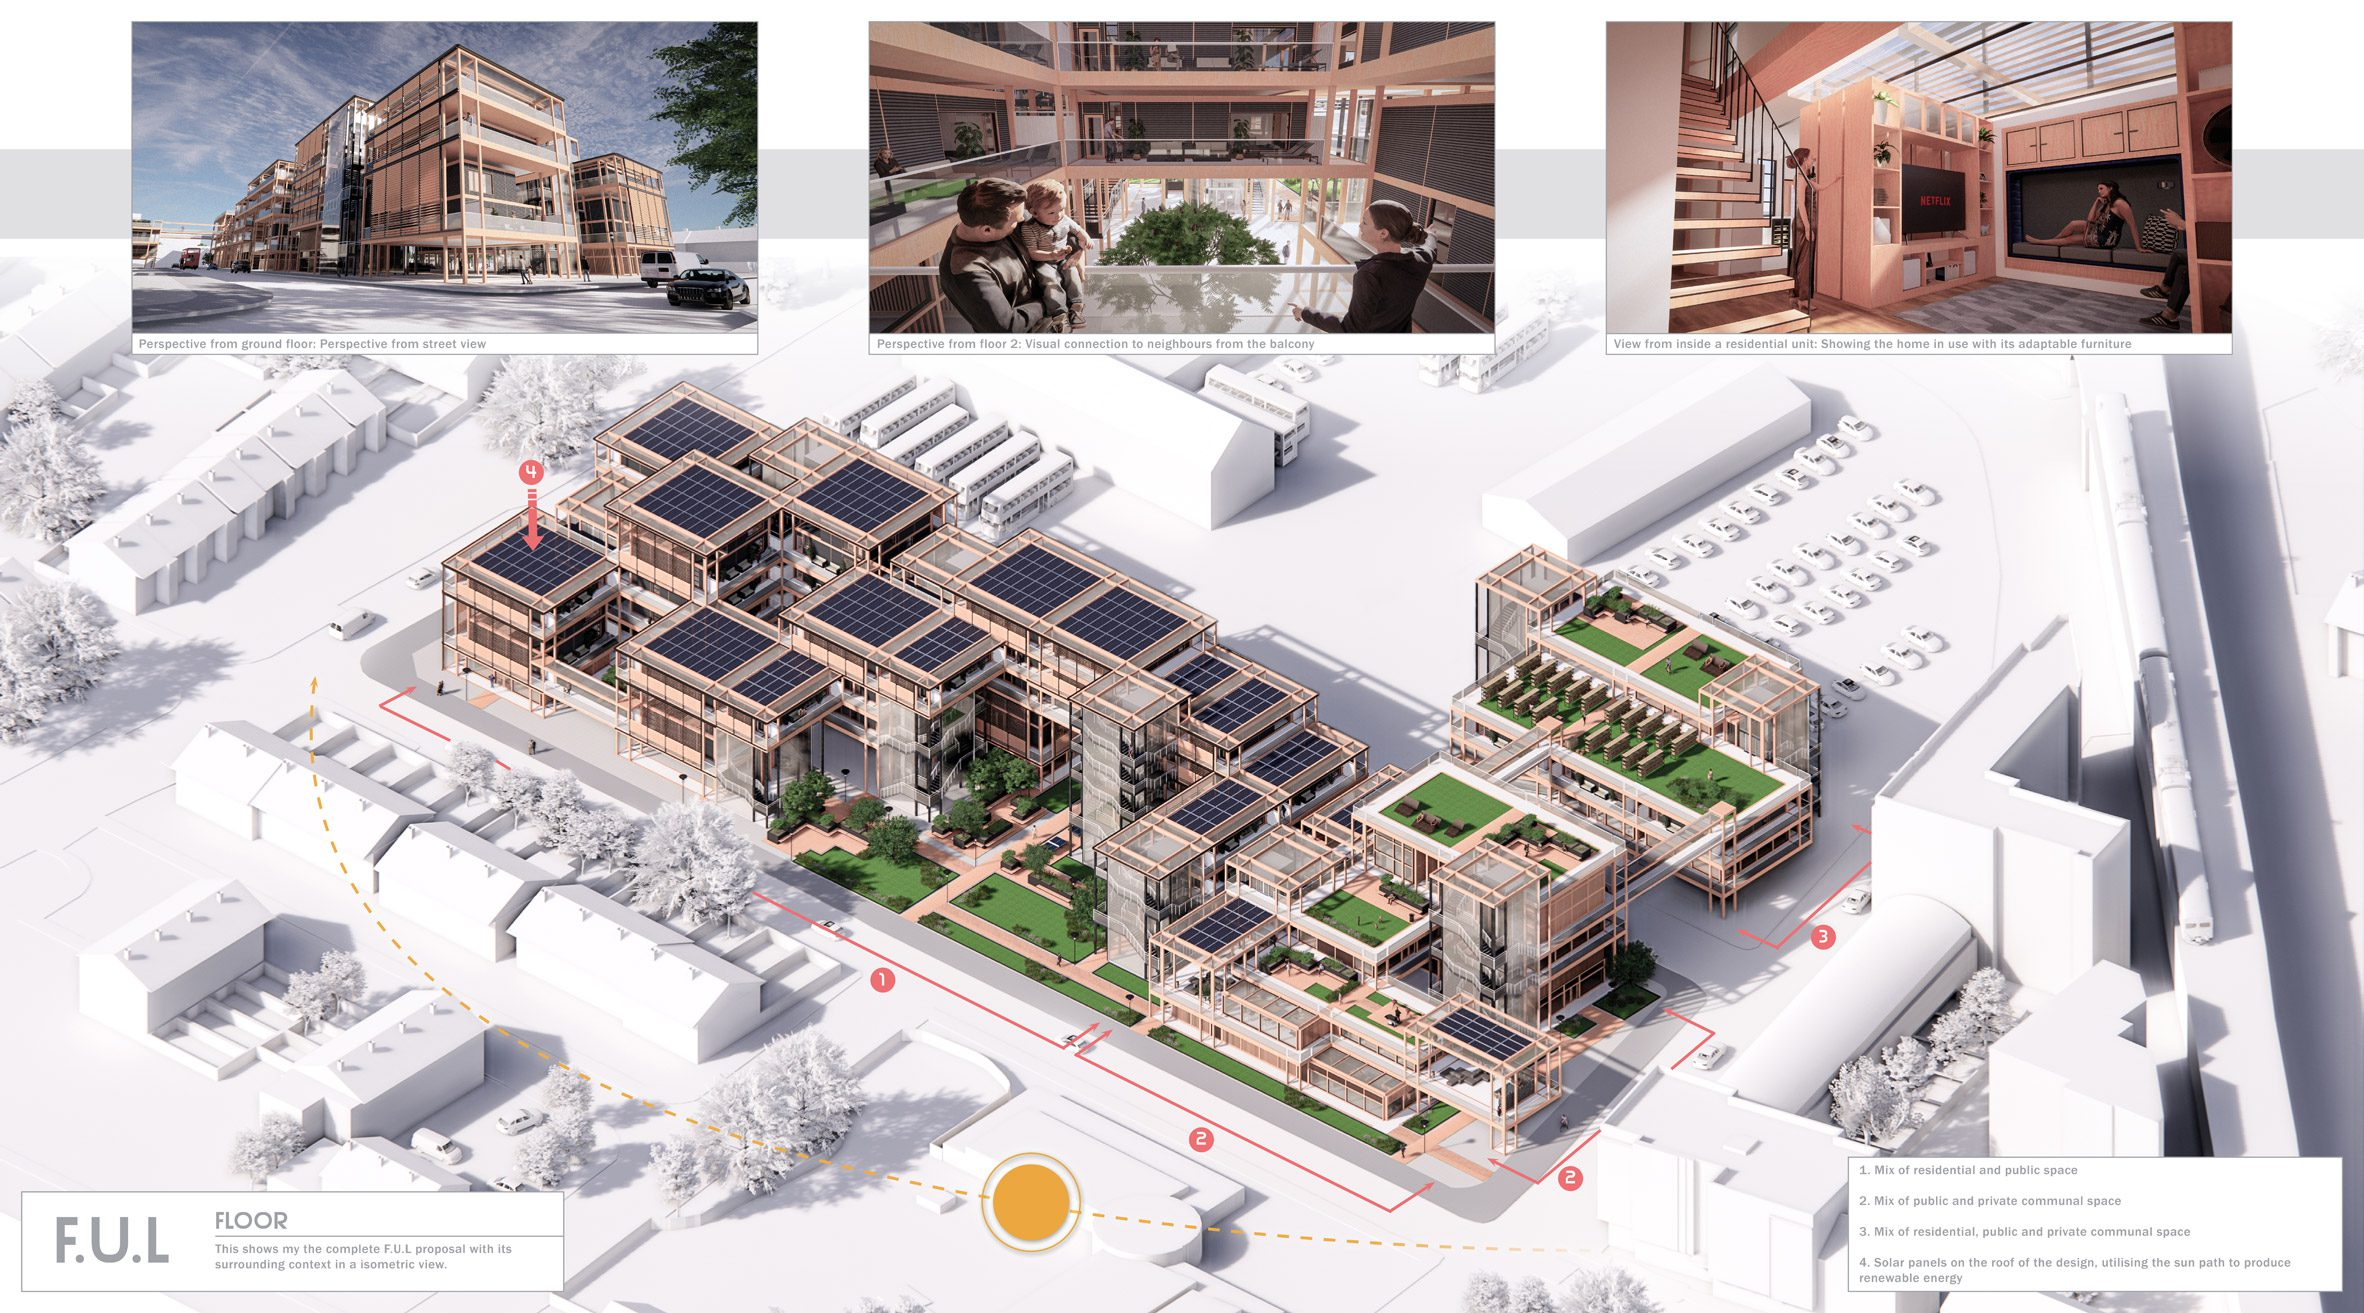 A model of a space for flexible urban living